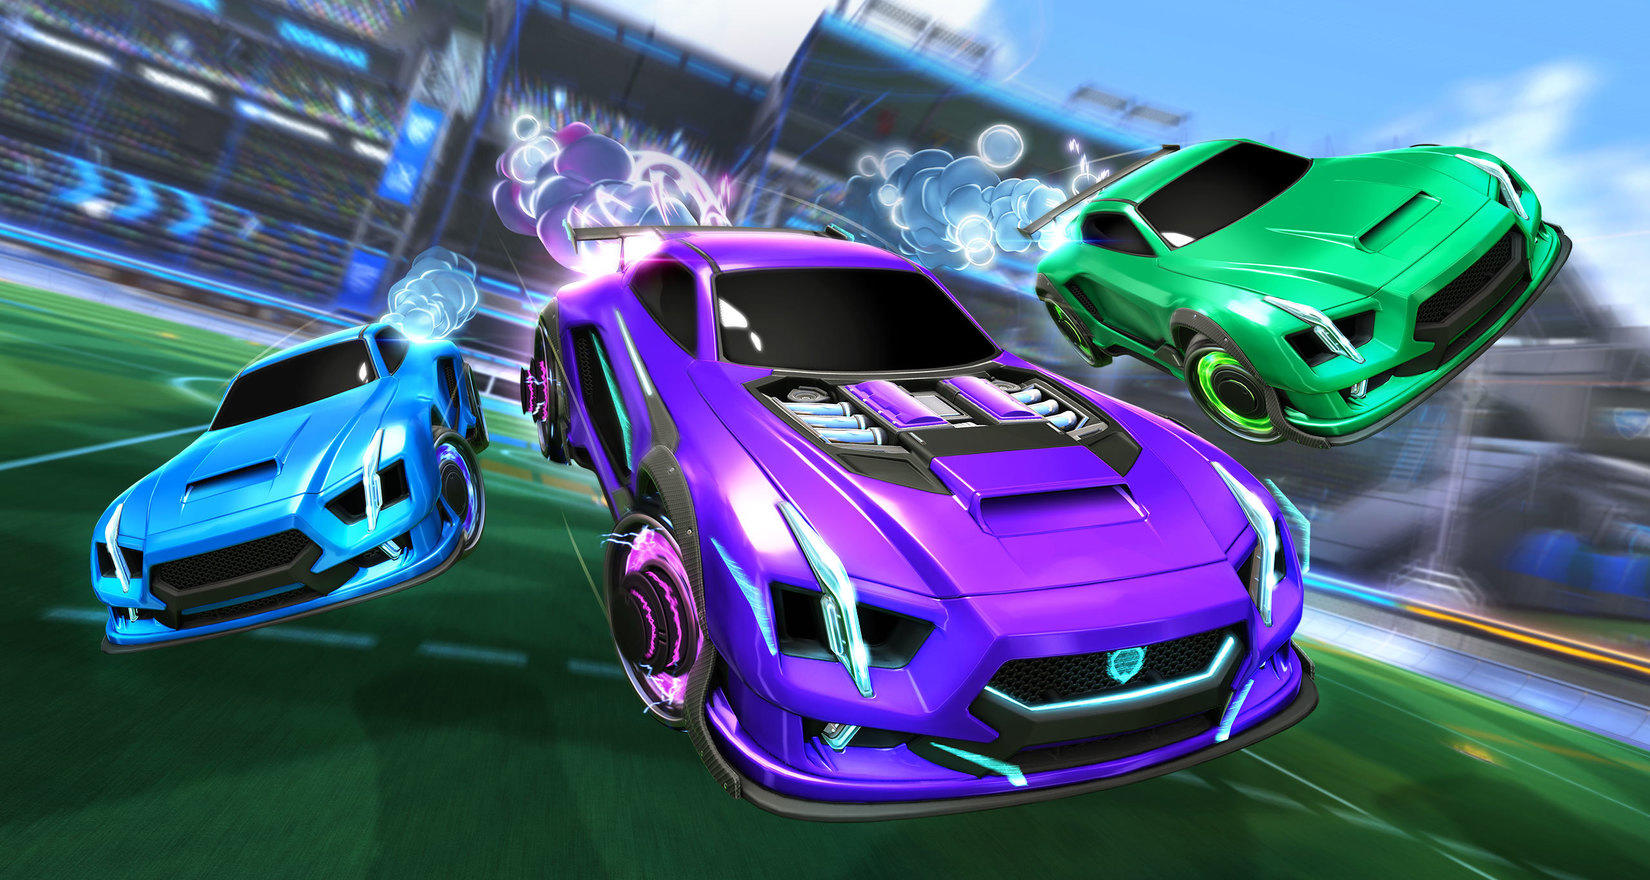 Rocket League finally gets full cross-platform support on PS4 screenshot